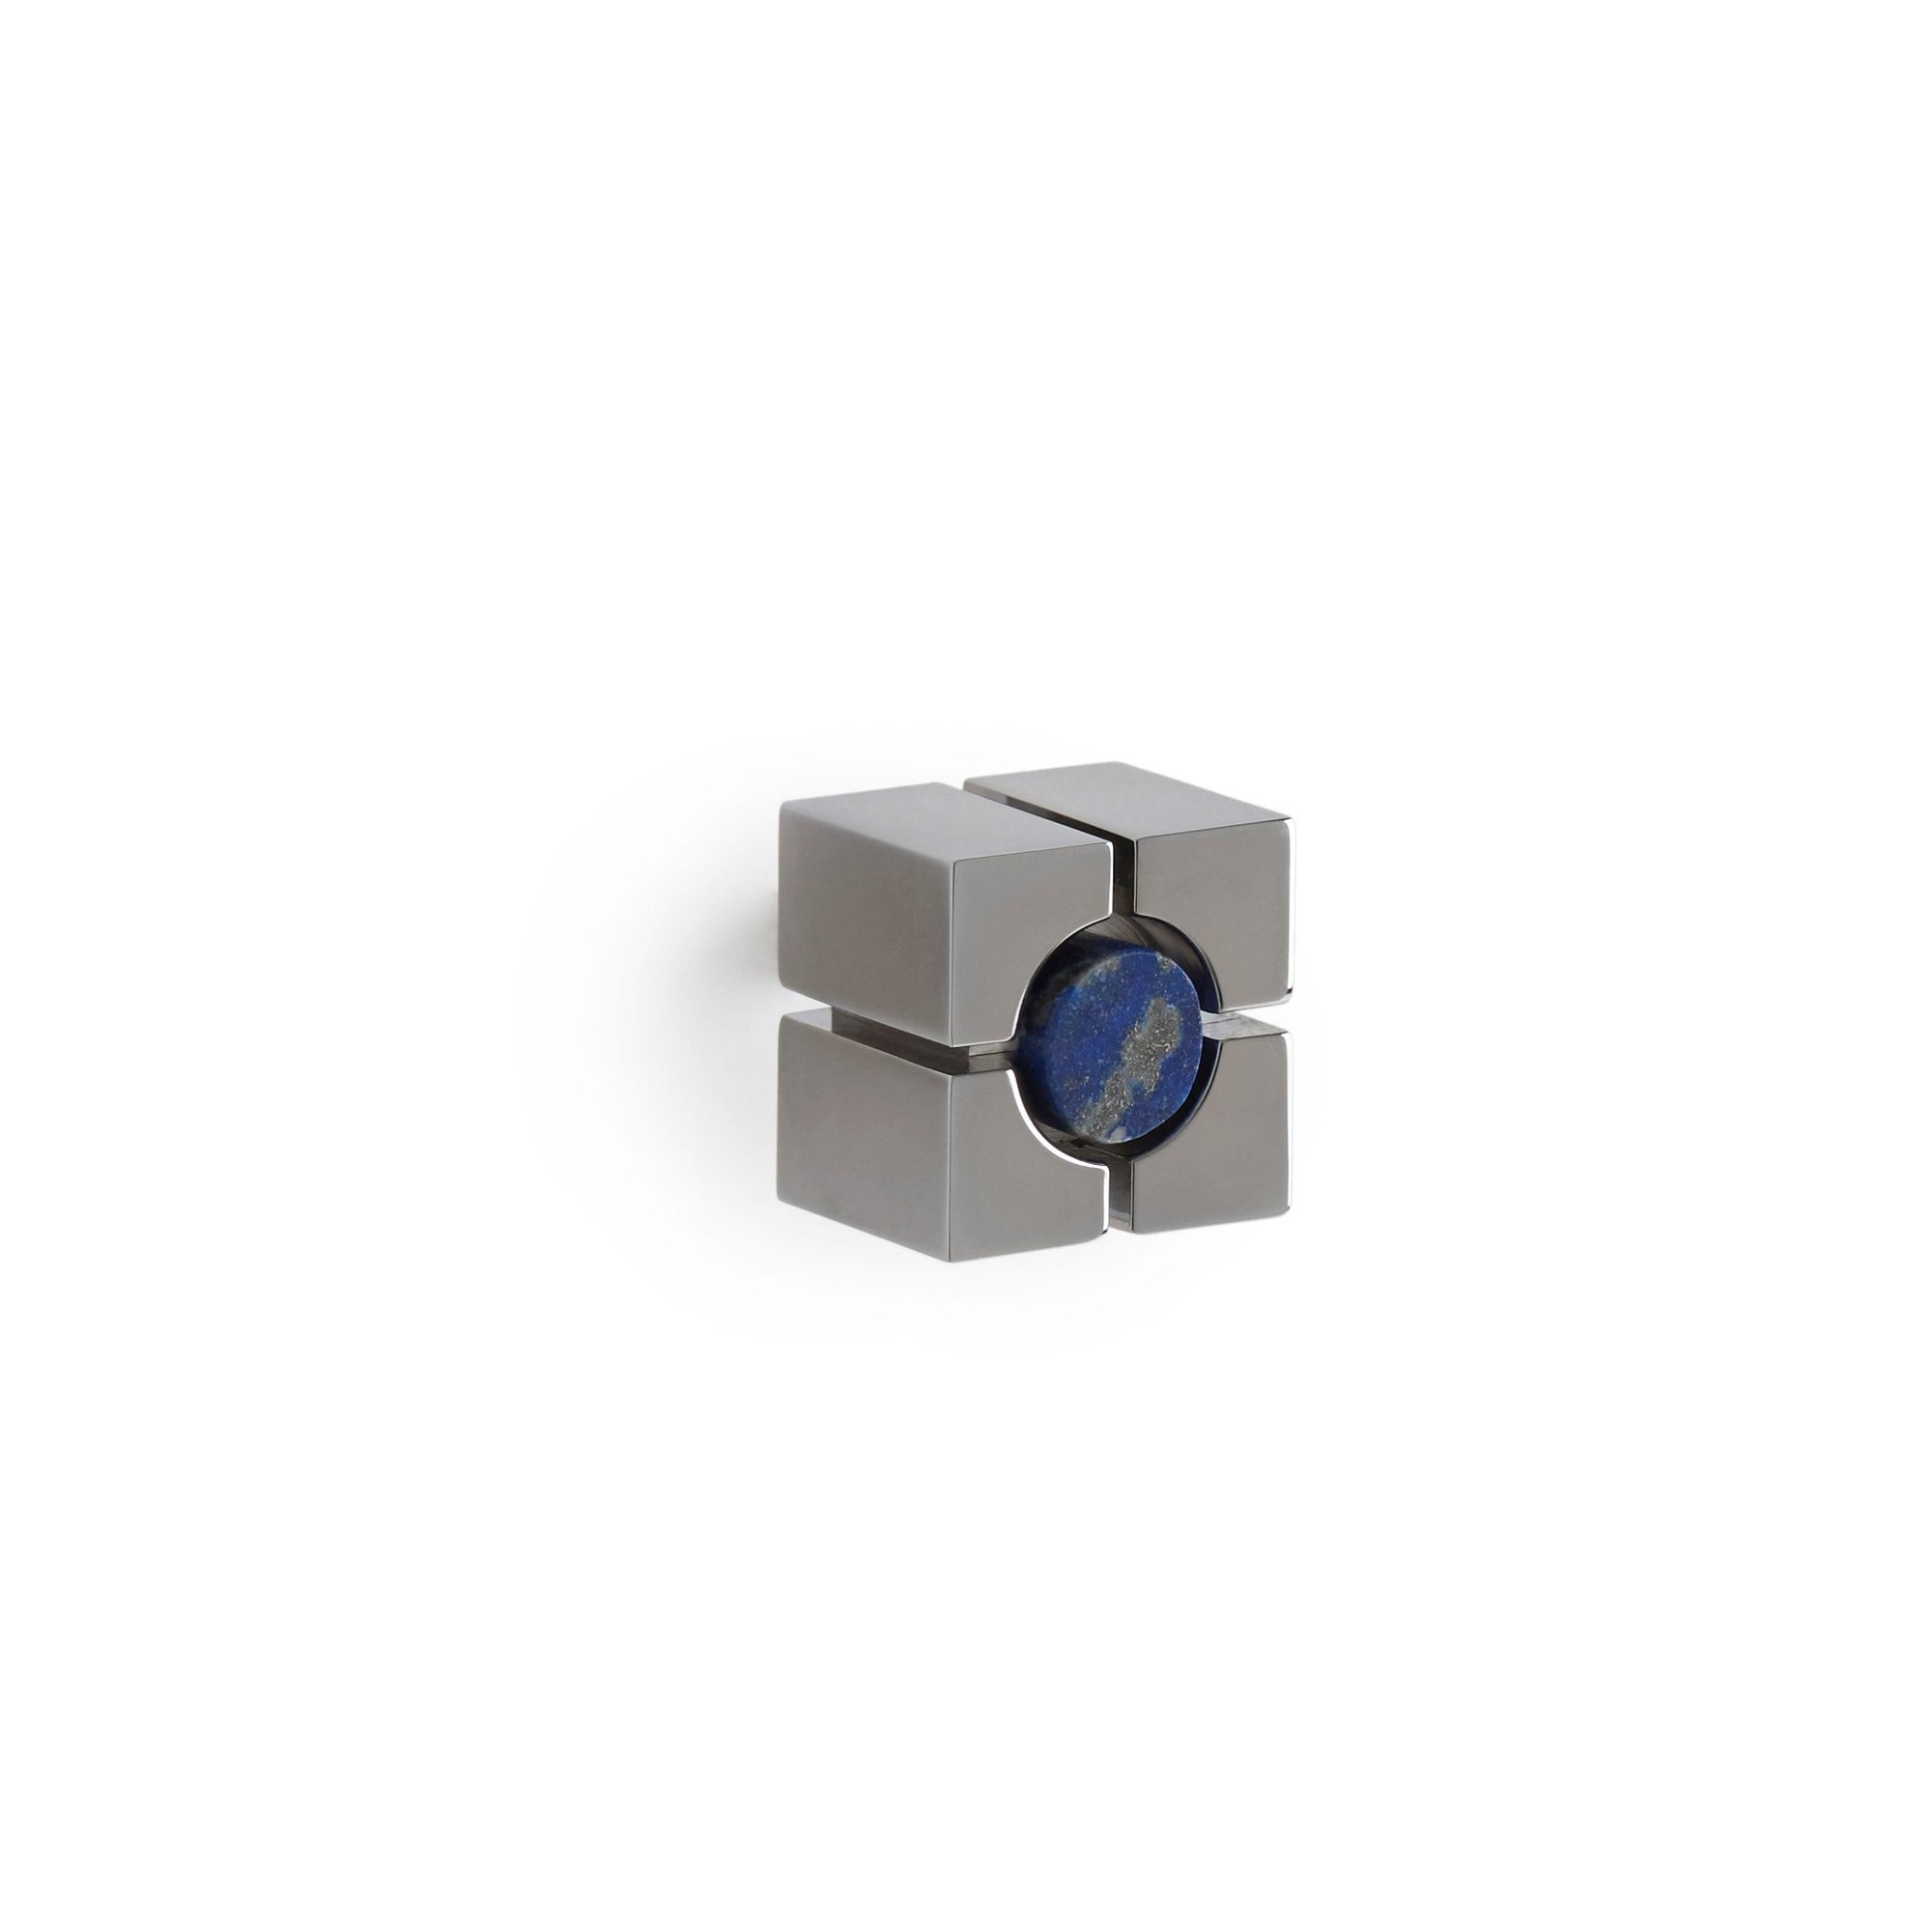 2103A-LAPI-CP Sherle Wagner International The Stone Insert Quad Cabinet & Drawer Knob in Polished Chrome metal finish